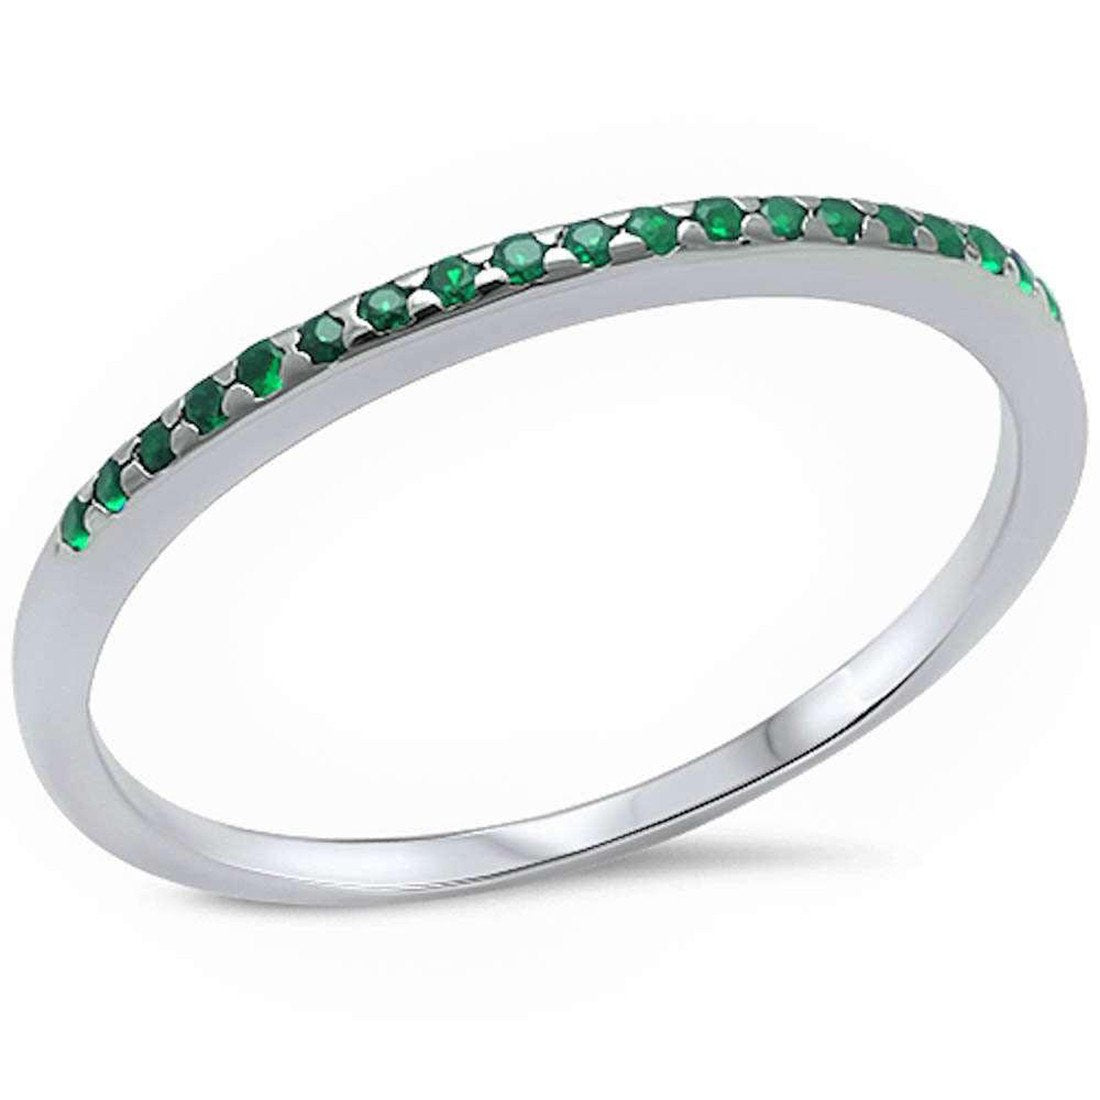 Half Eternity Wedding Band Ring Simulated Green Emerald CZ 925 Sterling Silver